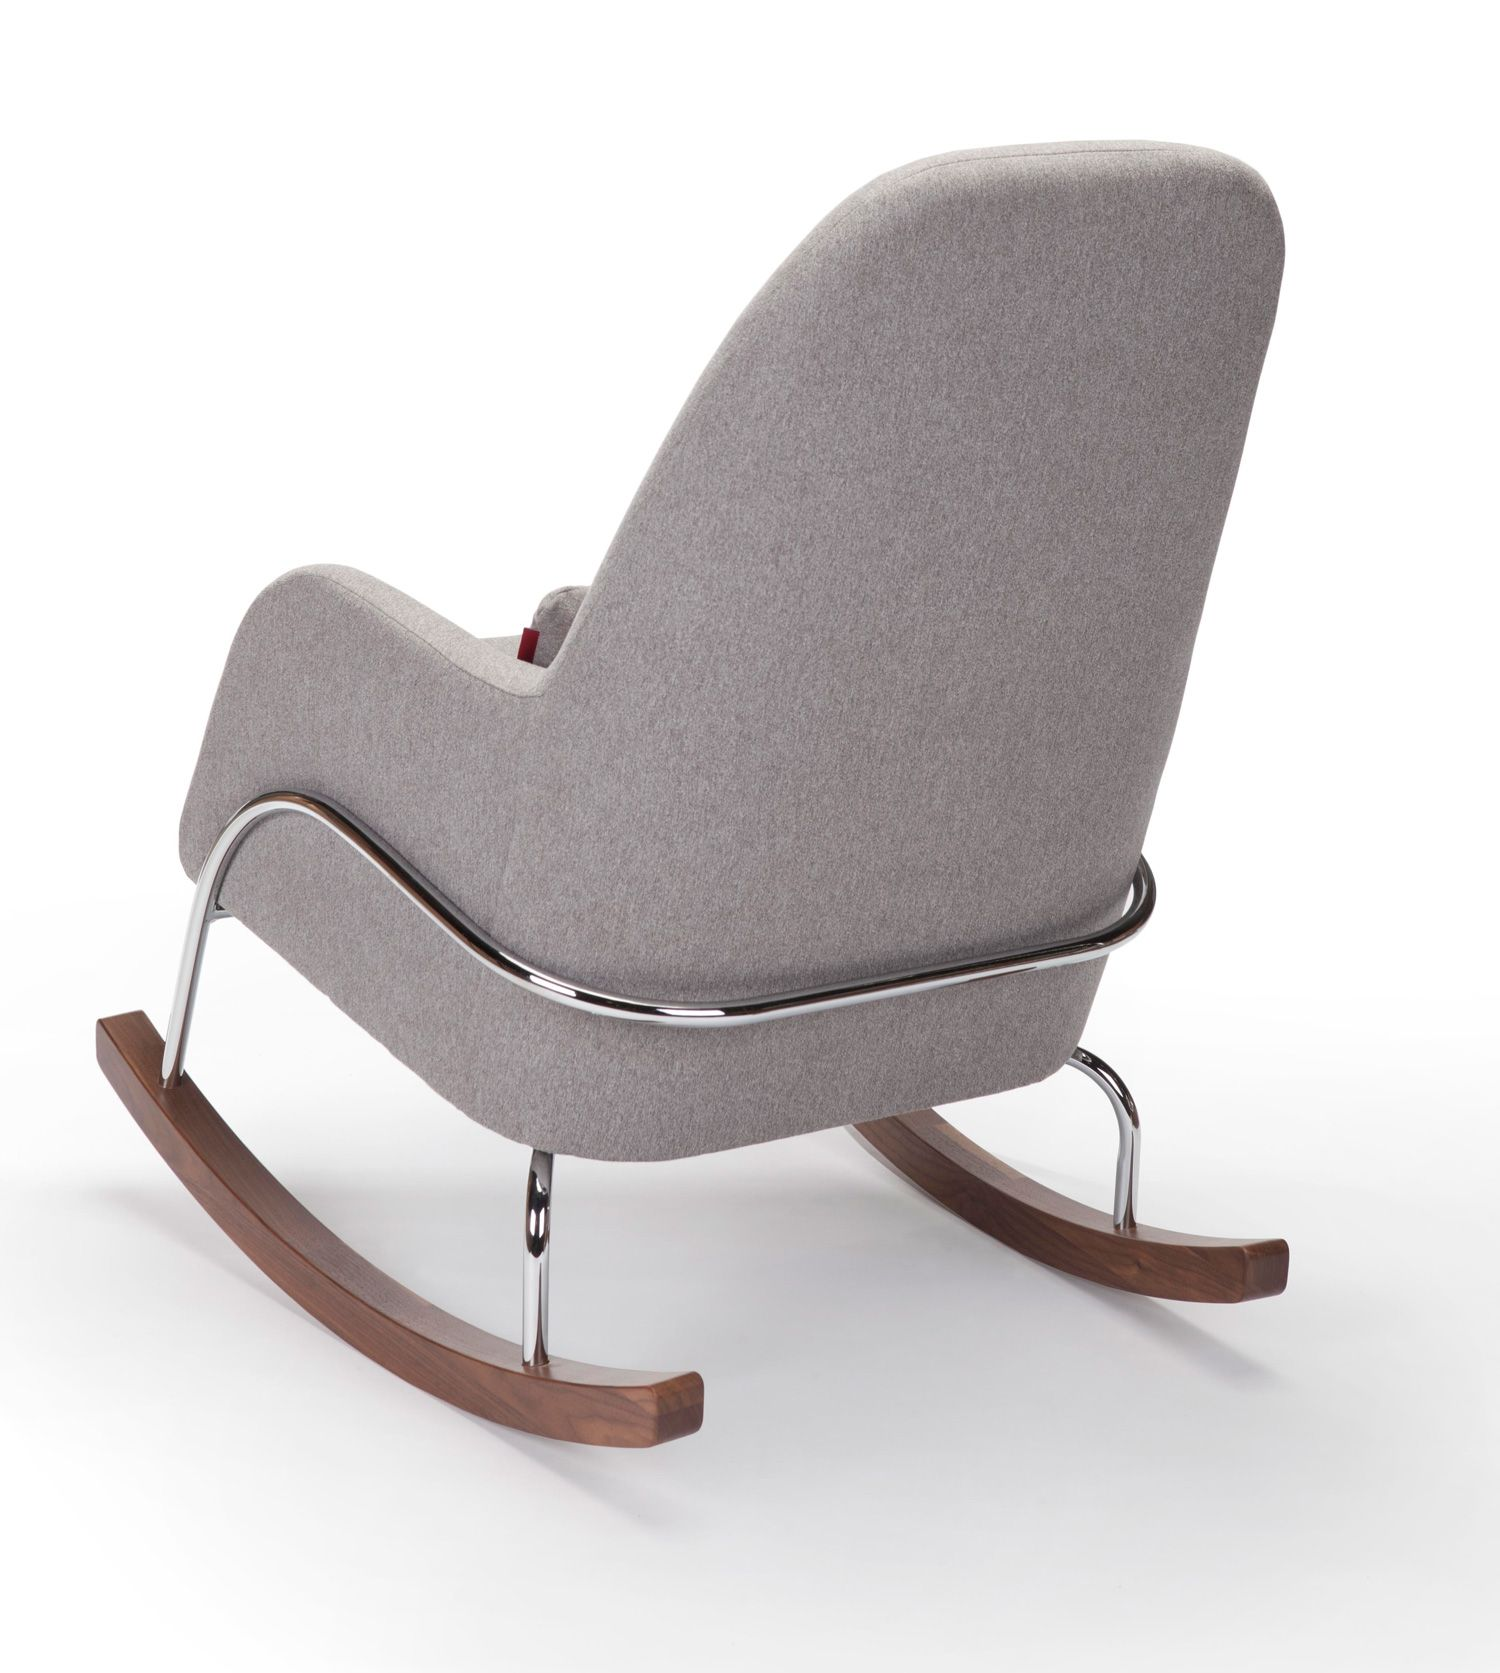 The Beautiful And Modern Jackson Rocker Has A High Back That Will Allow You  To Rest